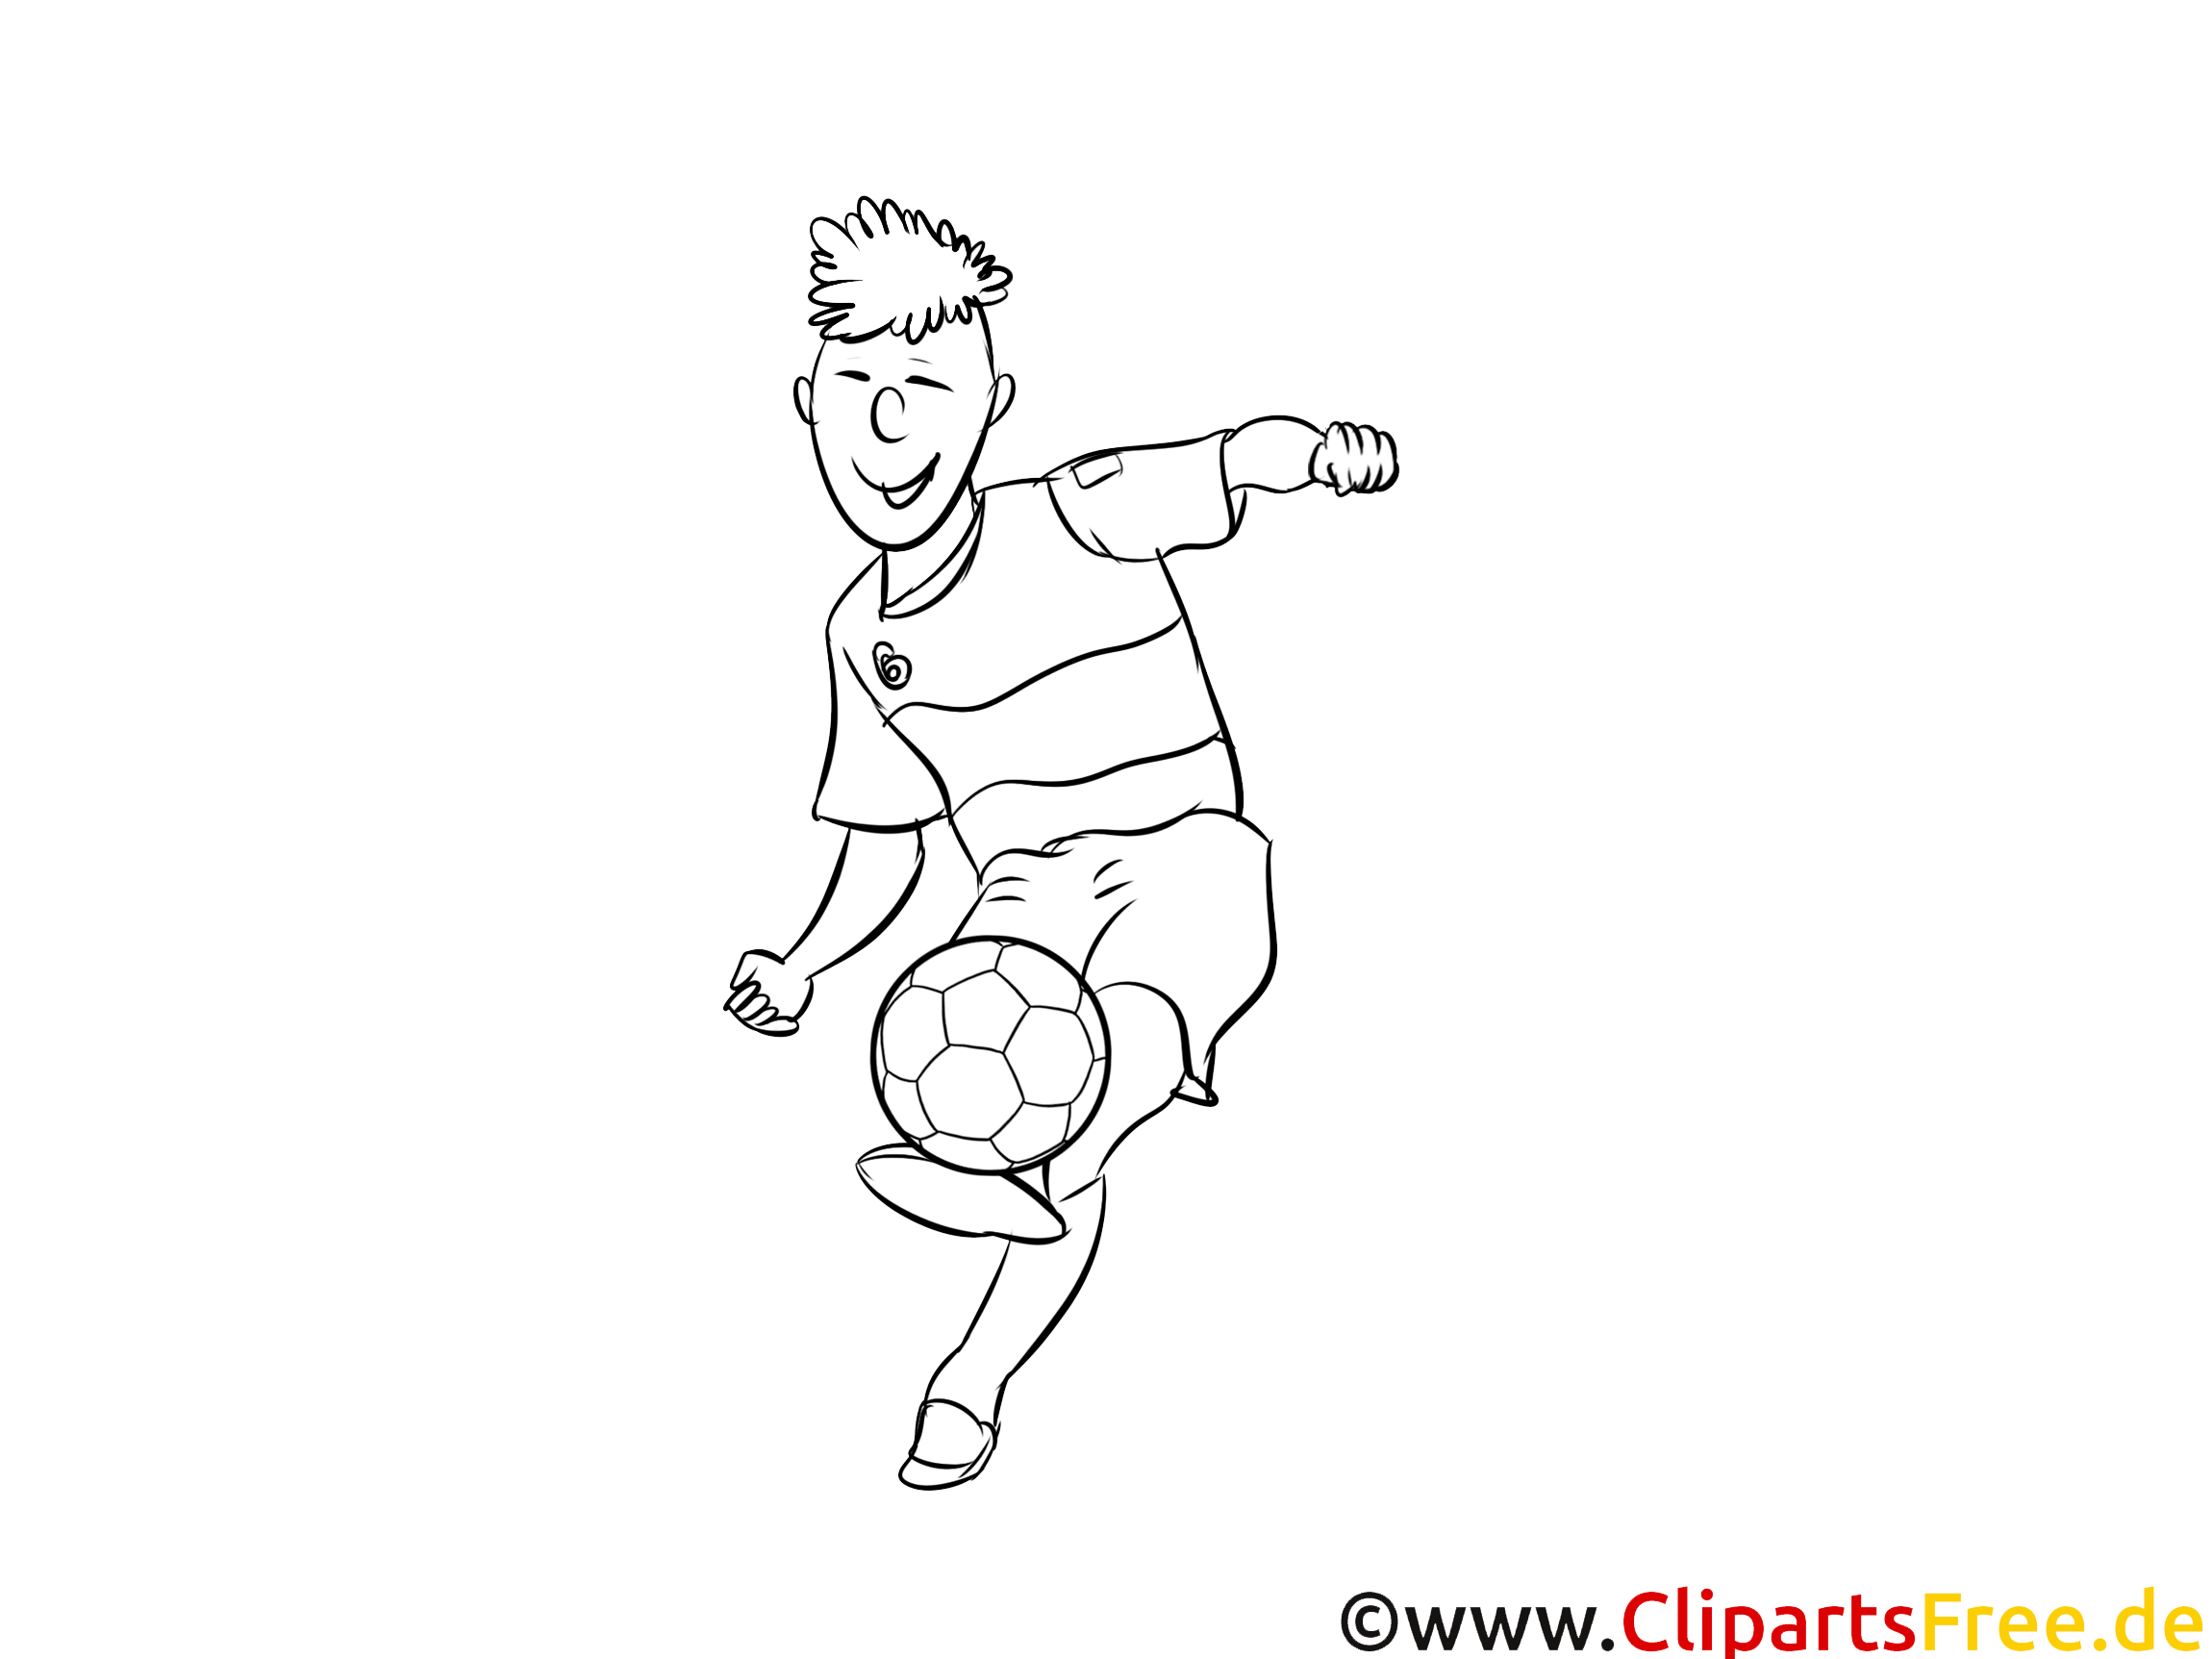 Fußball coloring page